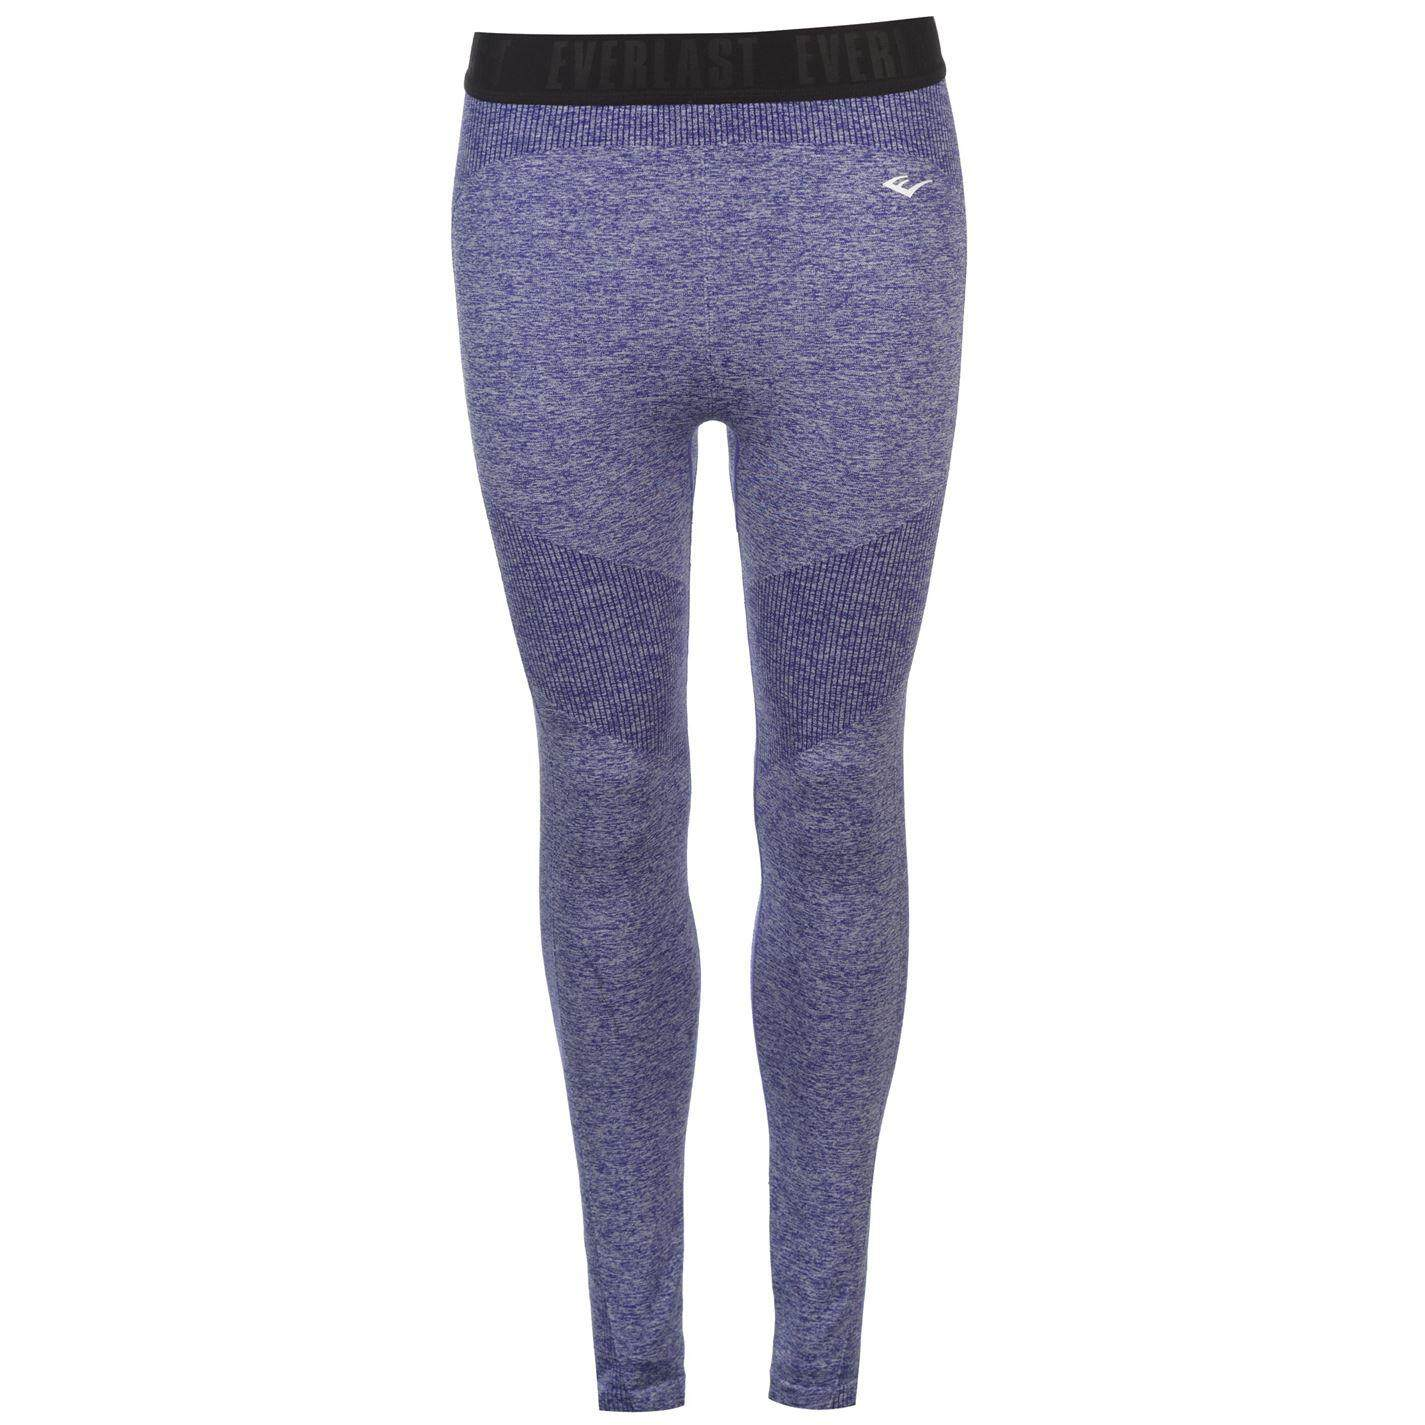 Everlast Womens Seamless Tights (blue Marl/black) By Sports Direct Mst Sdn Bhd.